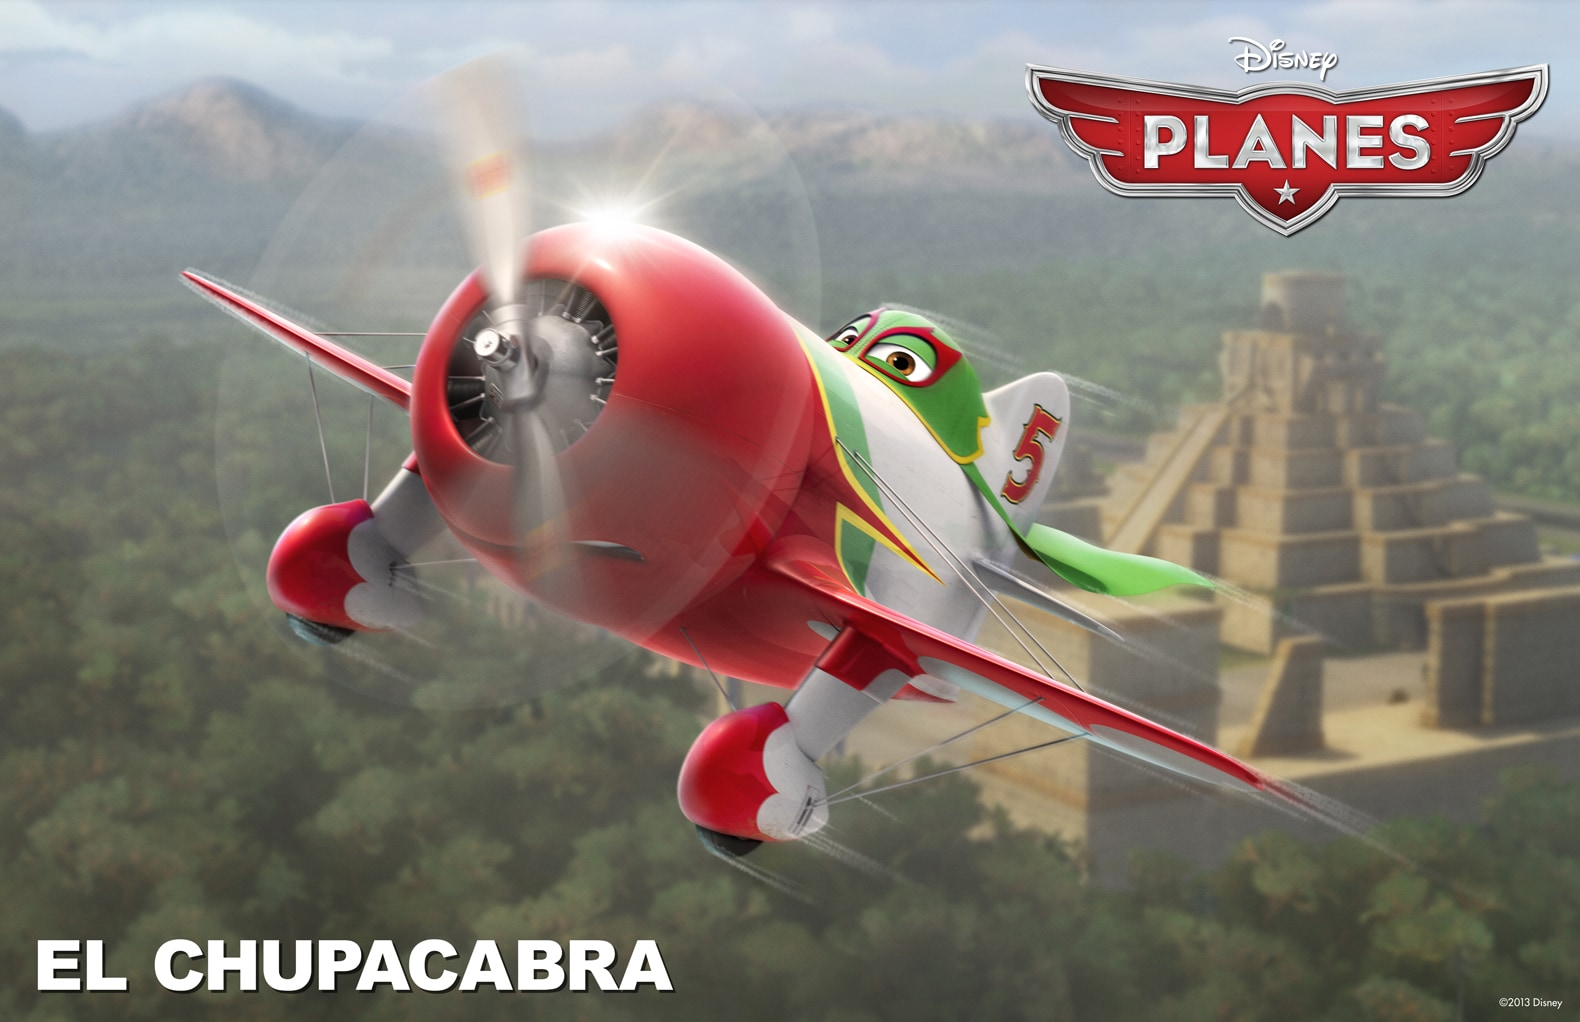 """The intensely charming El Chupacabra is a legend in Mexico, from the movie """"Planes"""""""